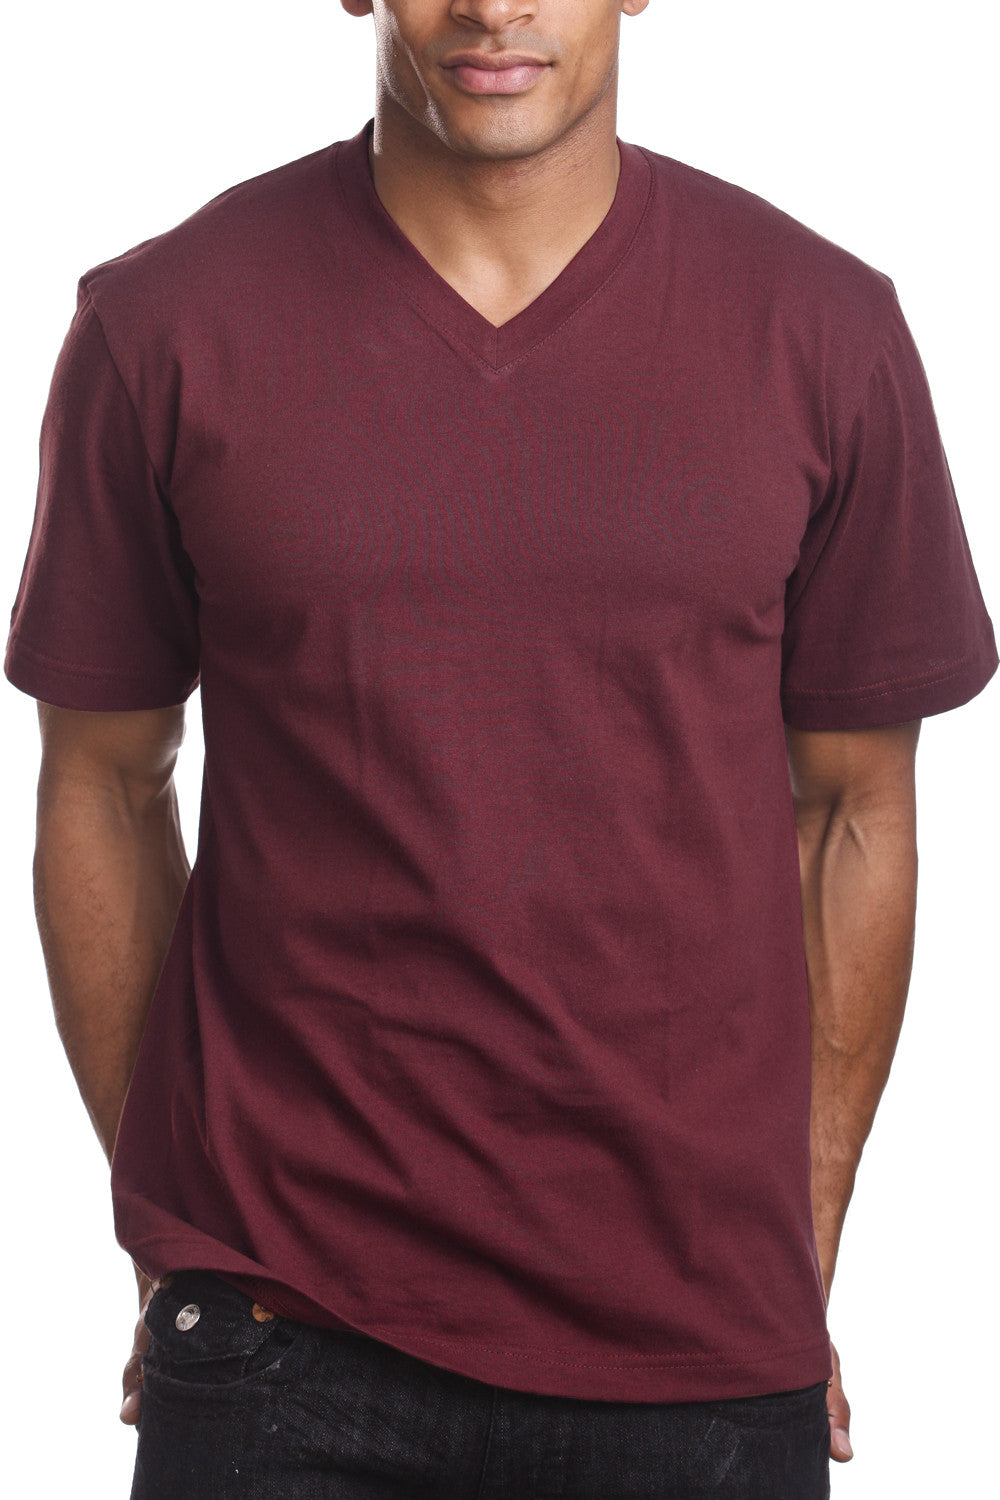 Mens Casual V-Neck T-Shirt Burgundy